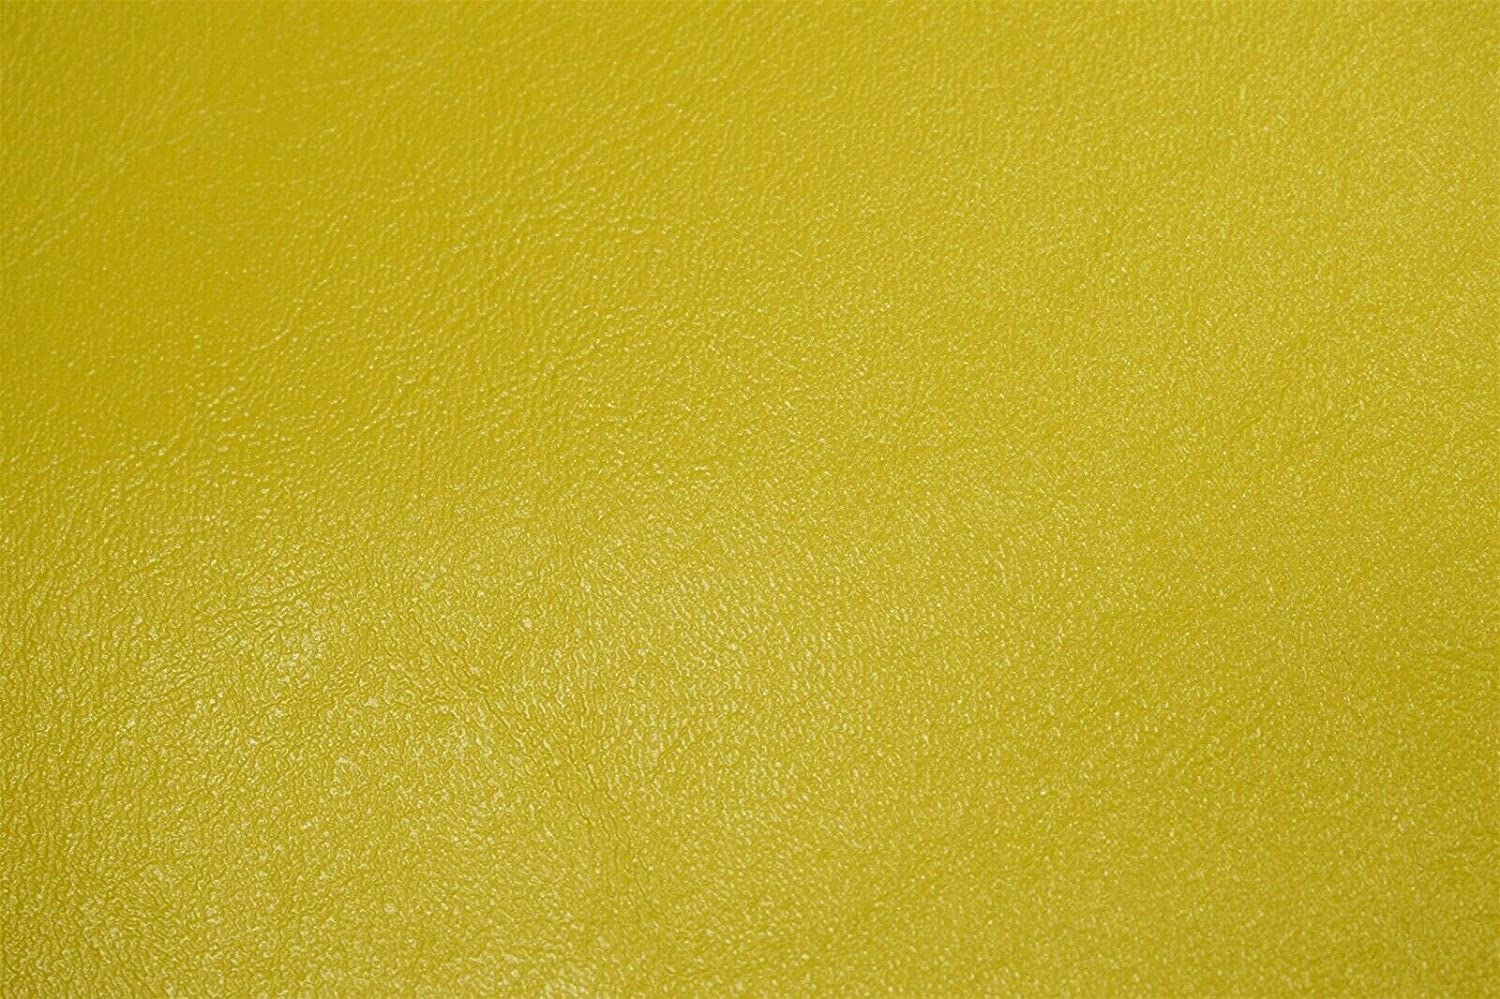 Fabric SEAL limited product by The Yard - Vinyl Yellow Choice U Outdoor Bright Marine